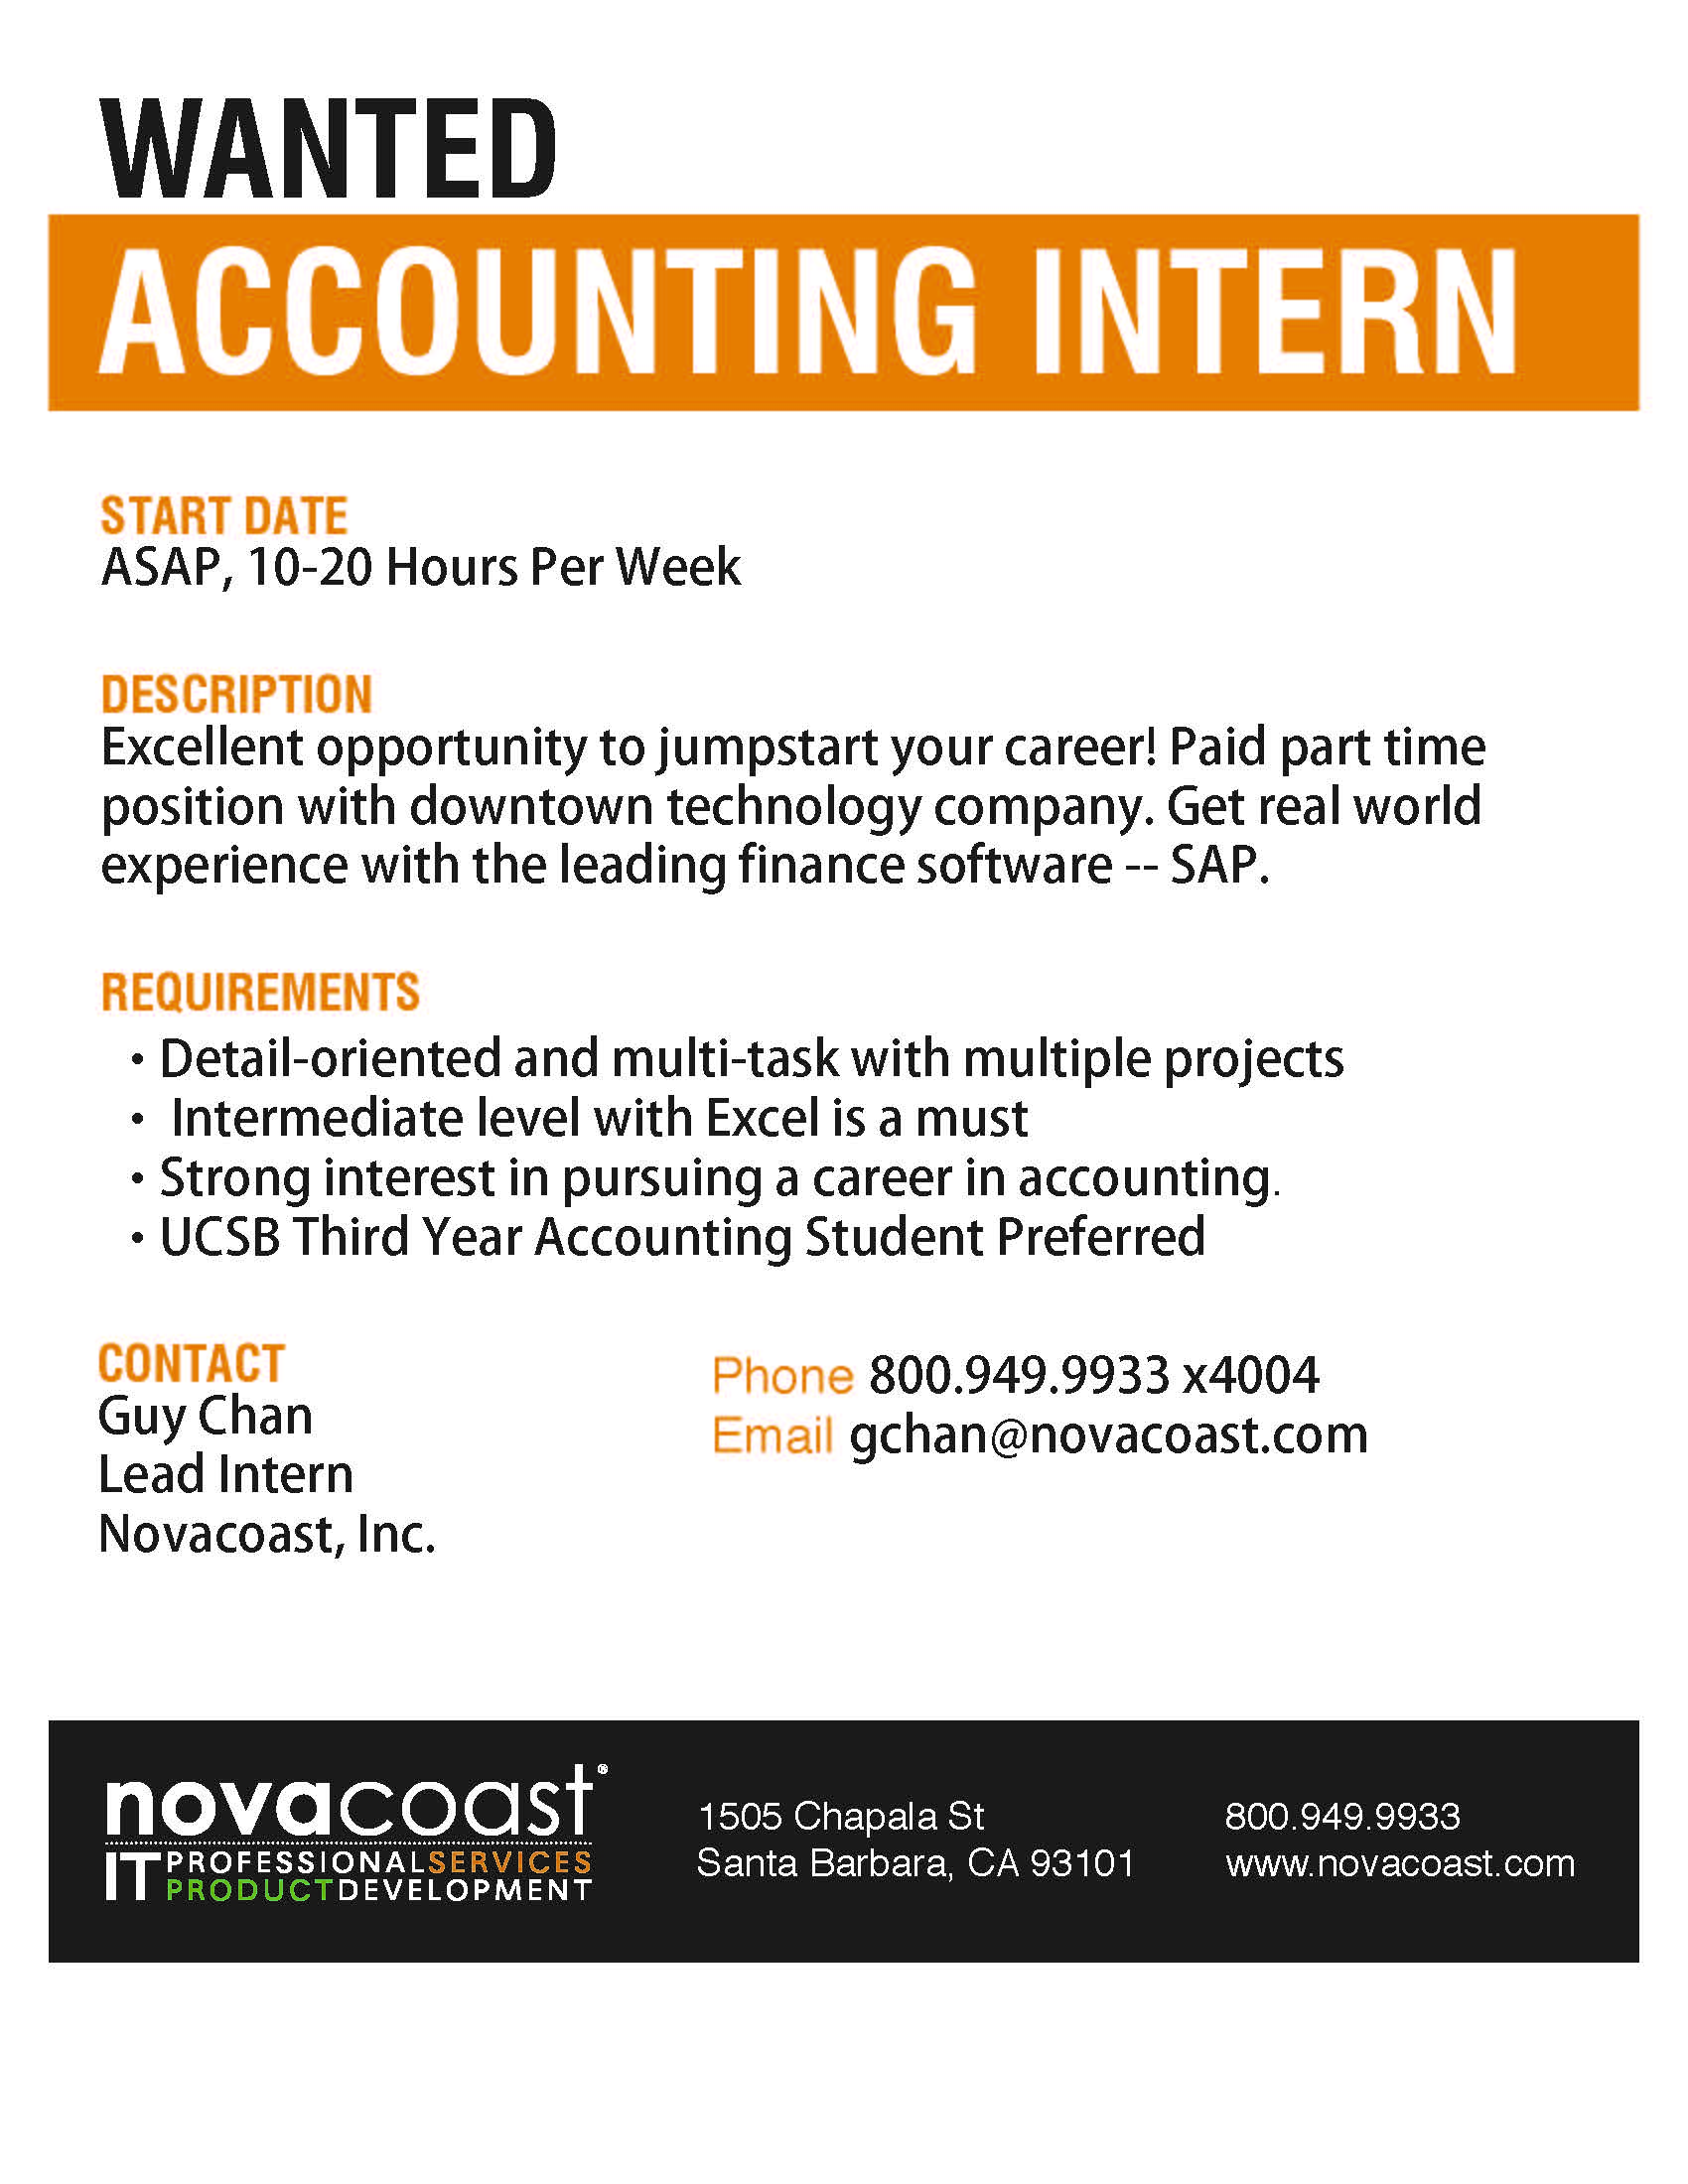 novacoast accounting internship flier fall 2013 1 - Accounting Internship Resume